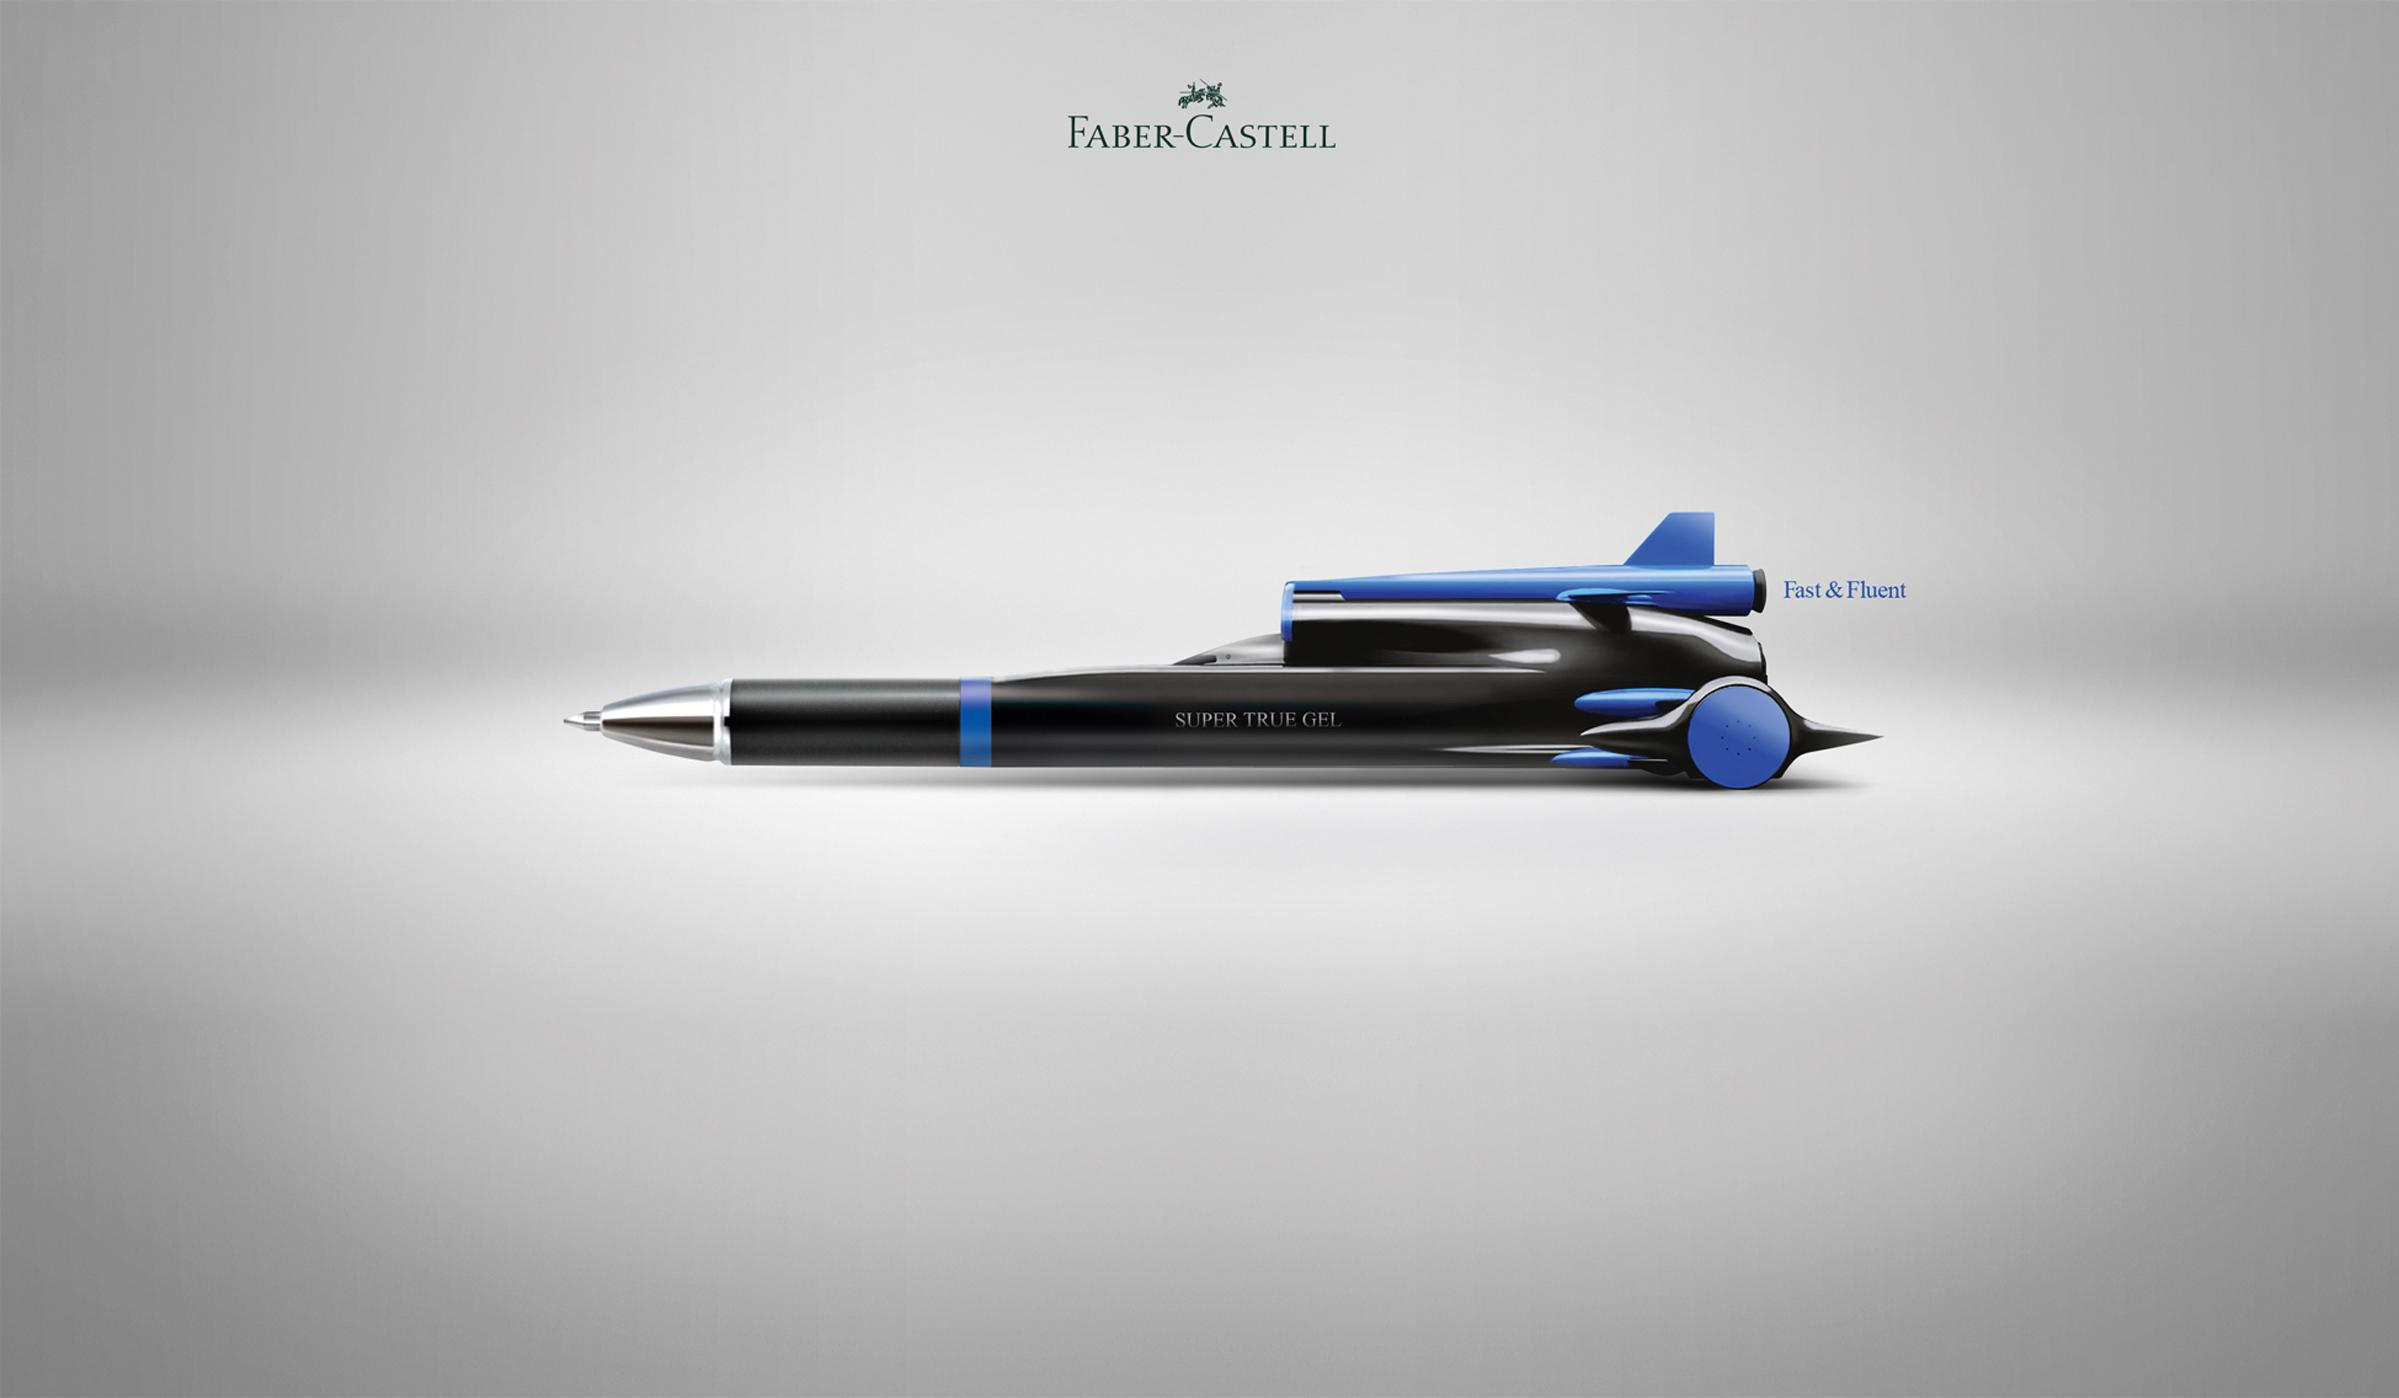 Faber-Castell Print Ad - Super True Gel, 3